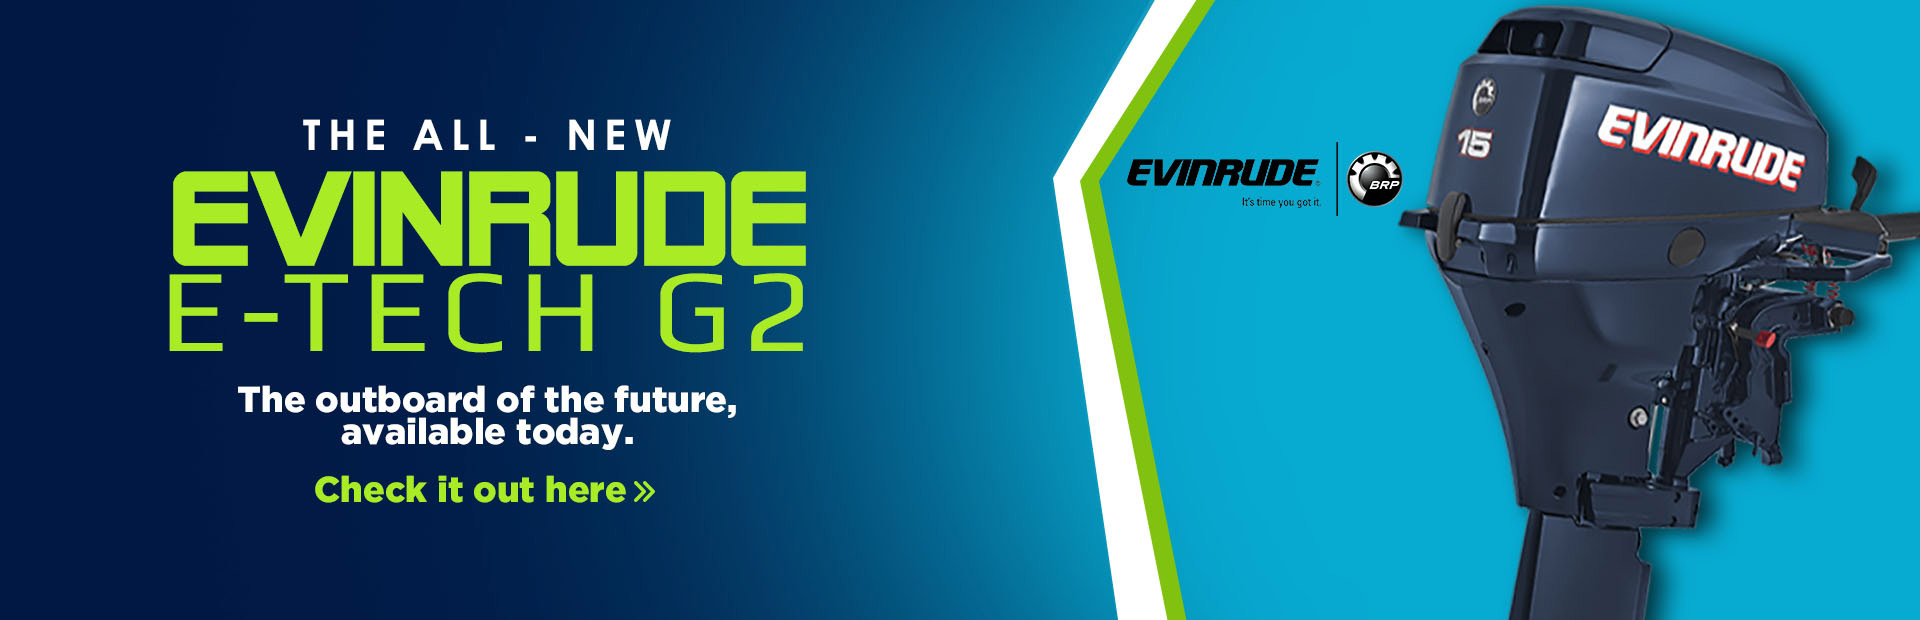 Evinrude Outboard Motors: Click here to view the models.